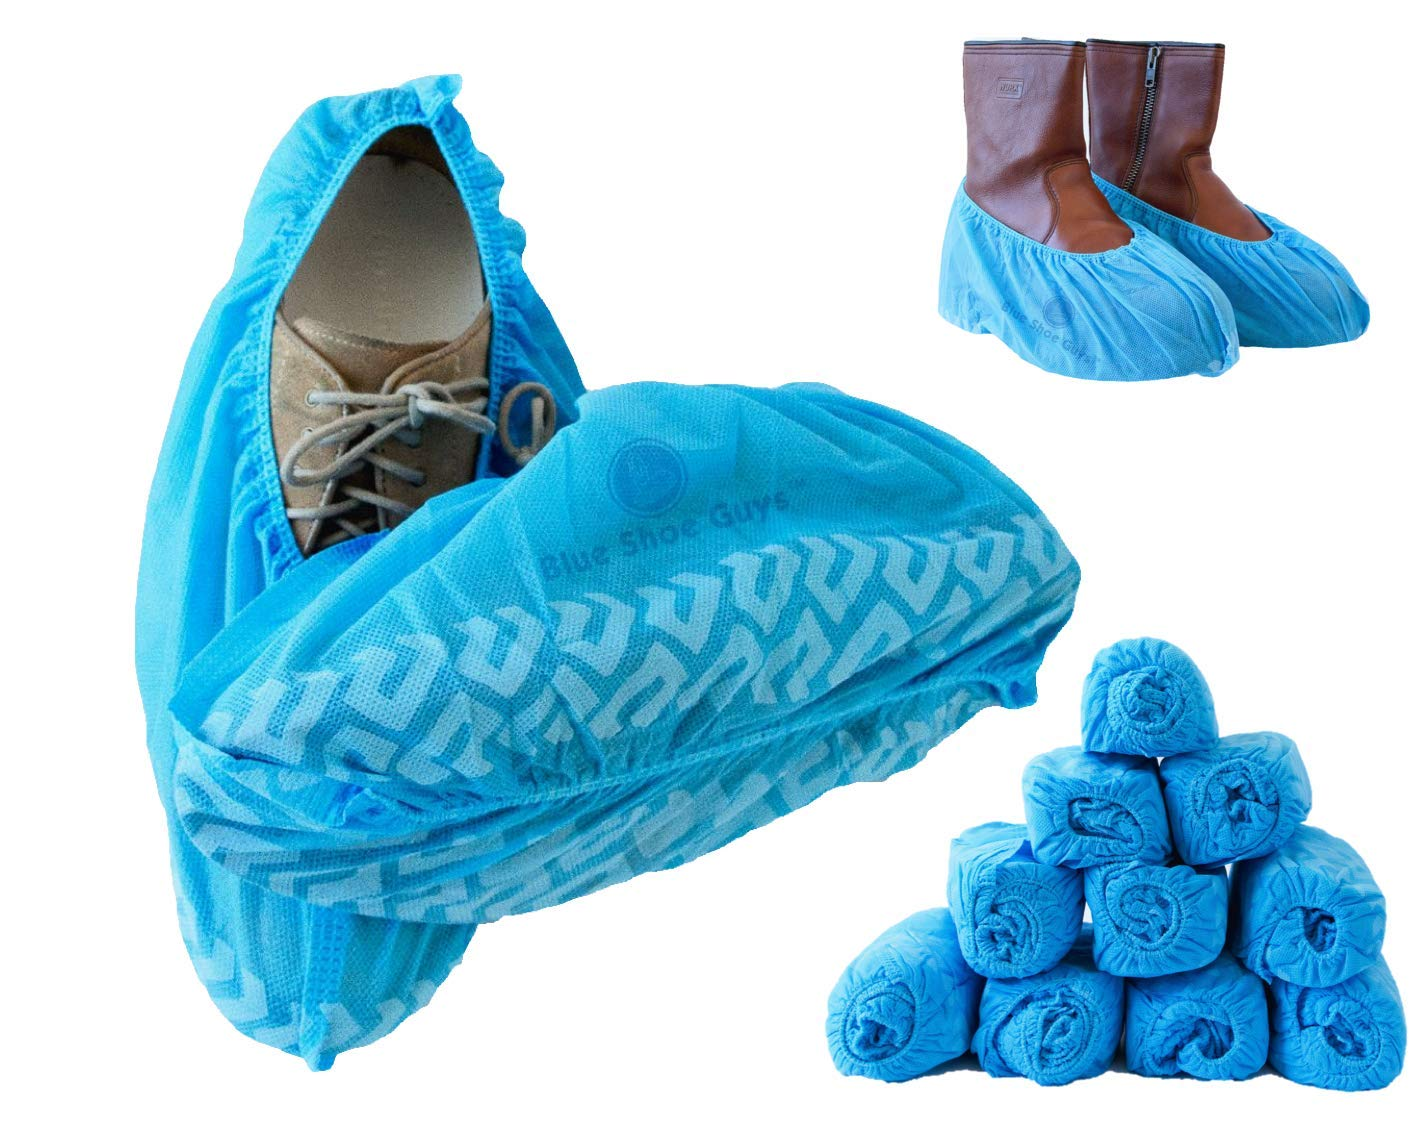 G /& F WATER PROOF Overall Premium Disposable Boot//Shoe Covers 50 Pack 25 Pairs